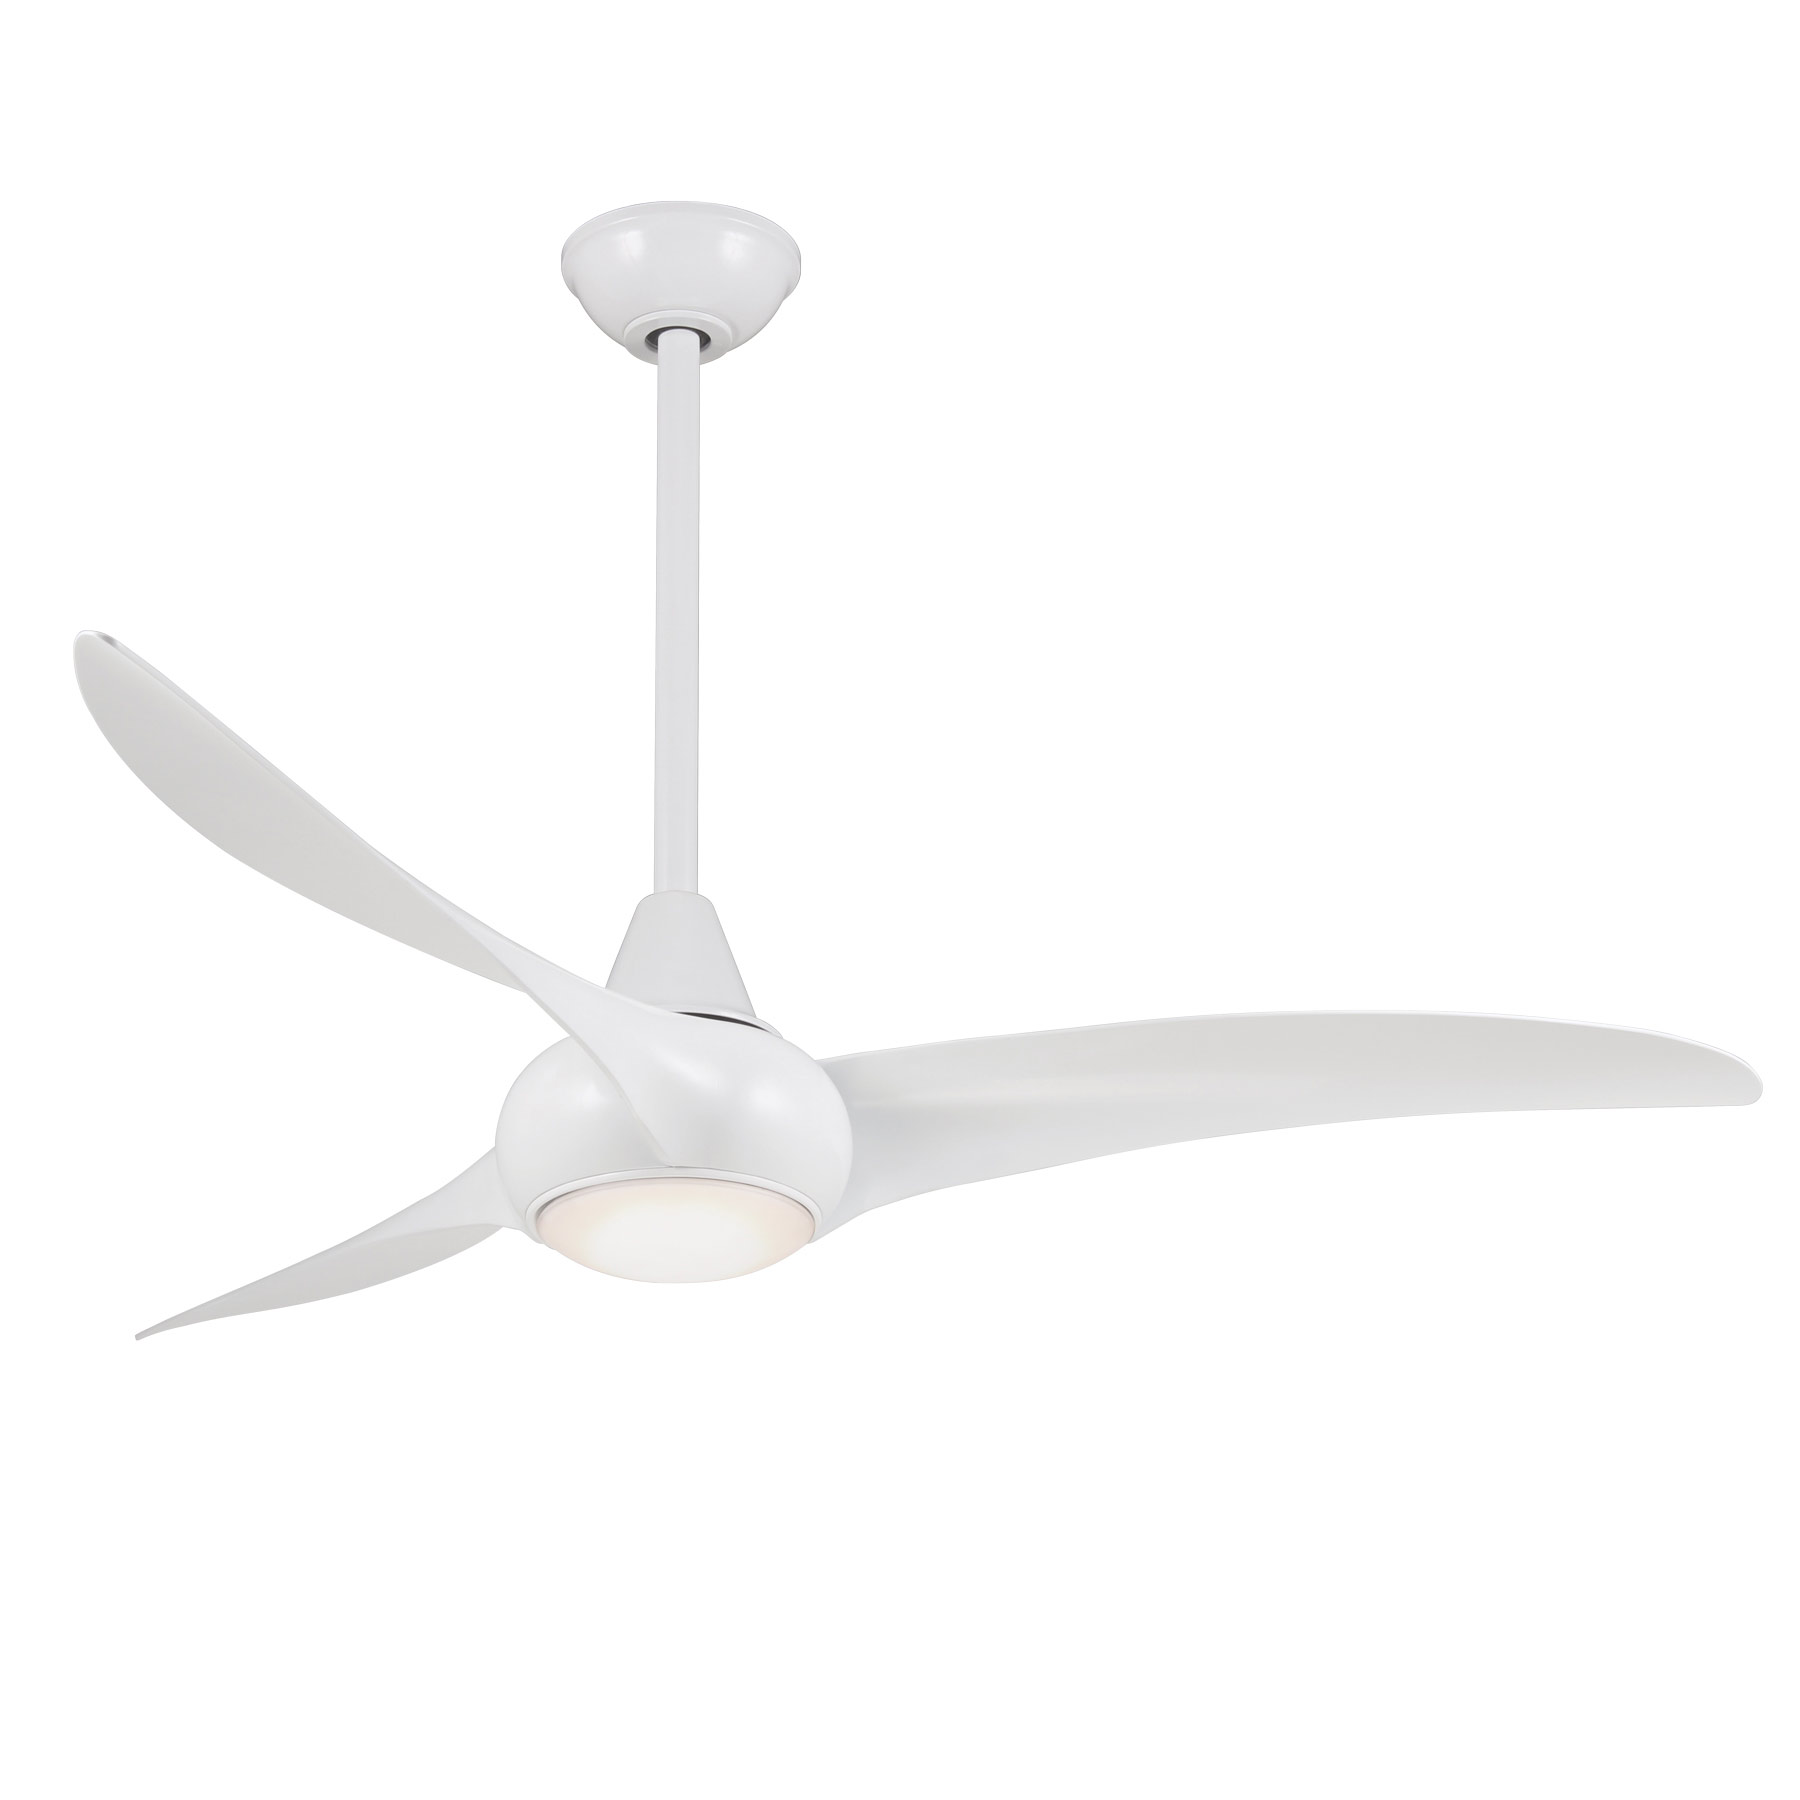 atlas best buy energy fans matthews ceiling dc lights designer fan with the brands eliza architects low ceilings henley white